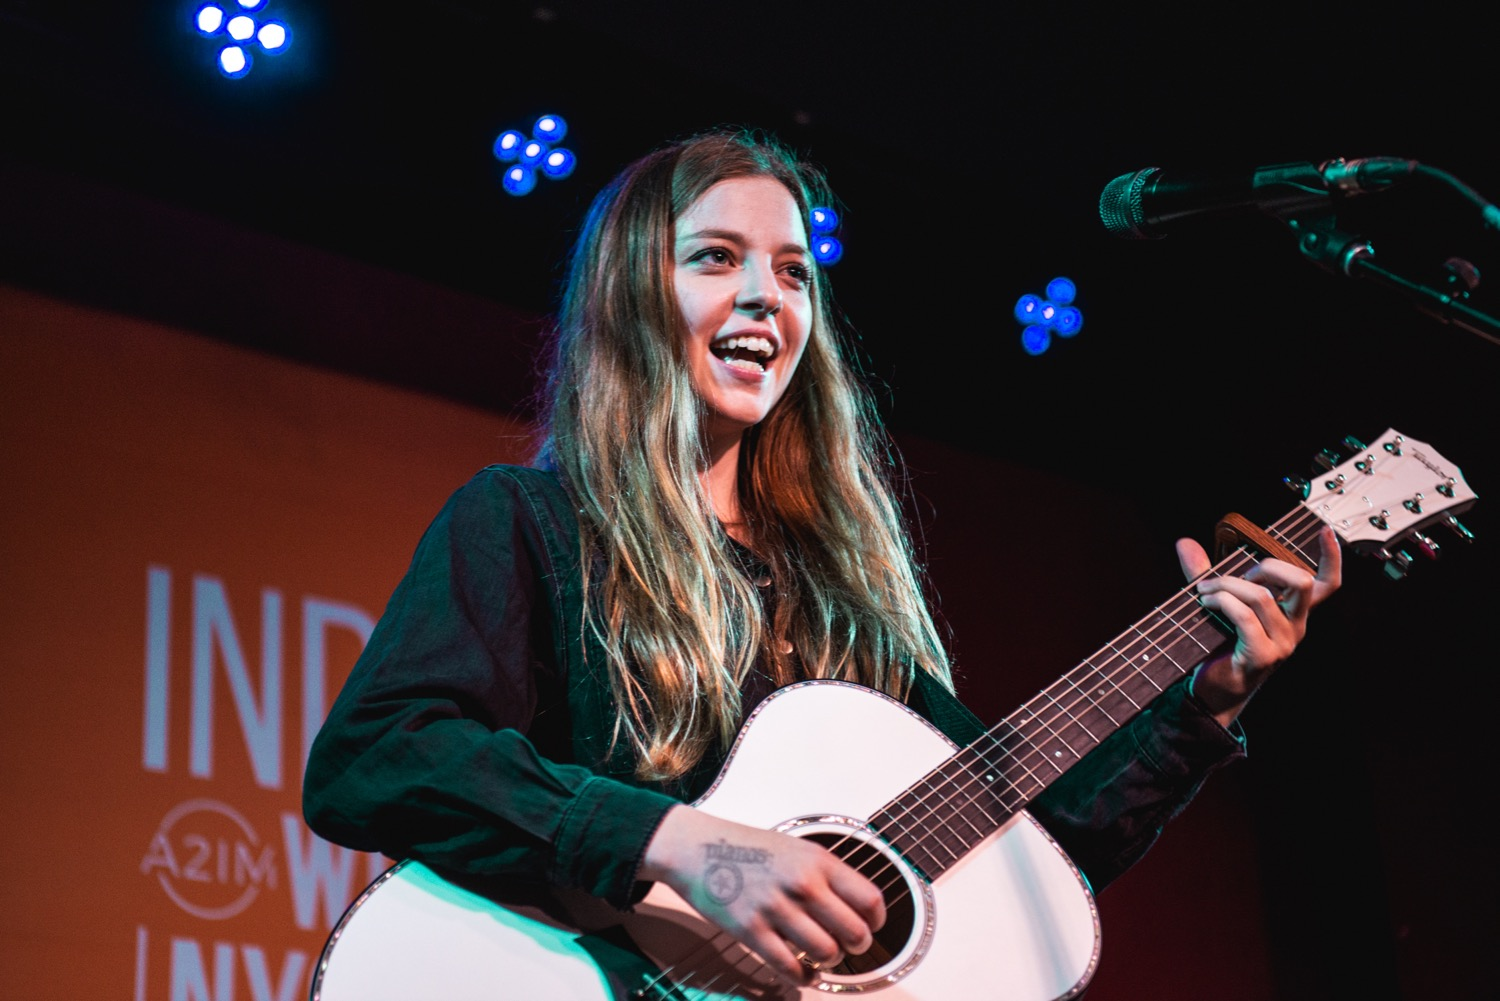 jadebird reeperbahn2018 cos juliadrummond 2 16 Reeperbahn New York Edition 2018 Photo Gallery: HAERTS, Jade Bird, Akua Naru, Surma